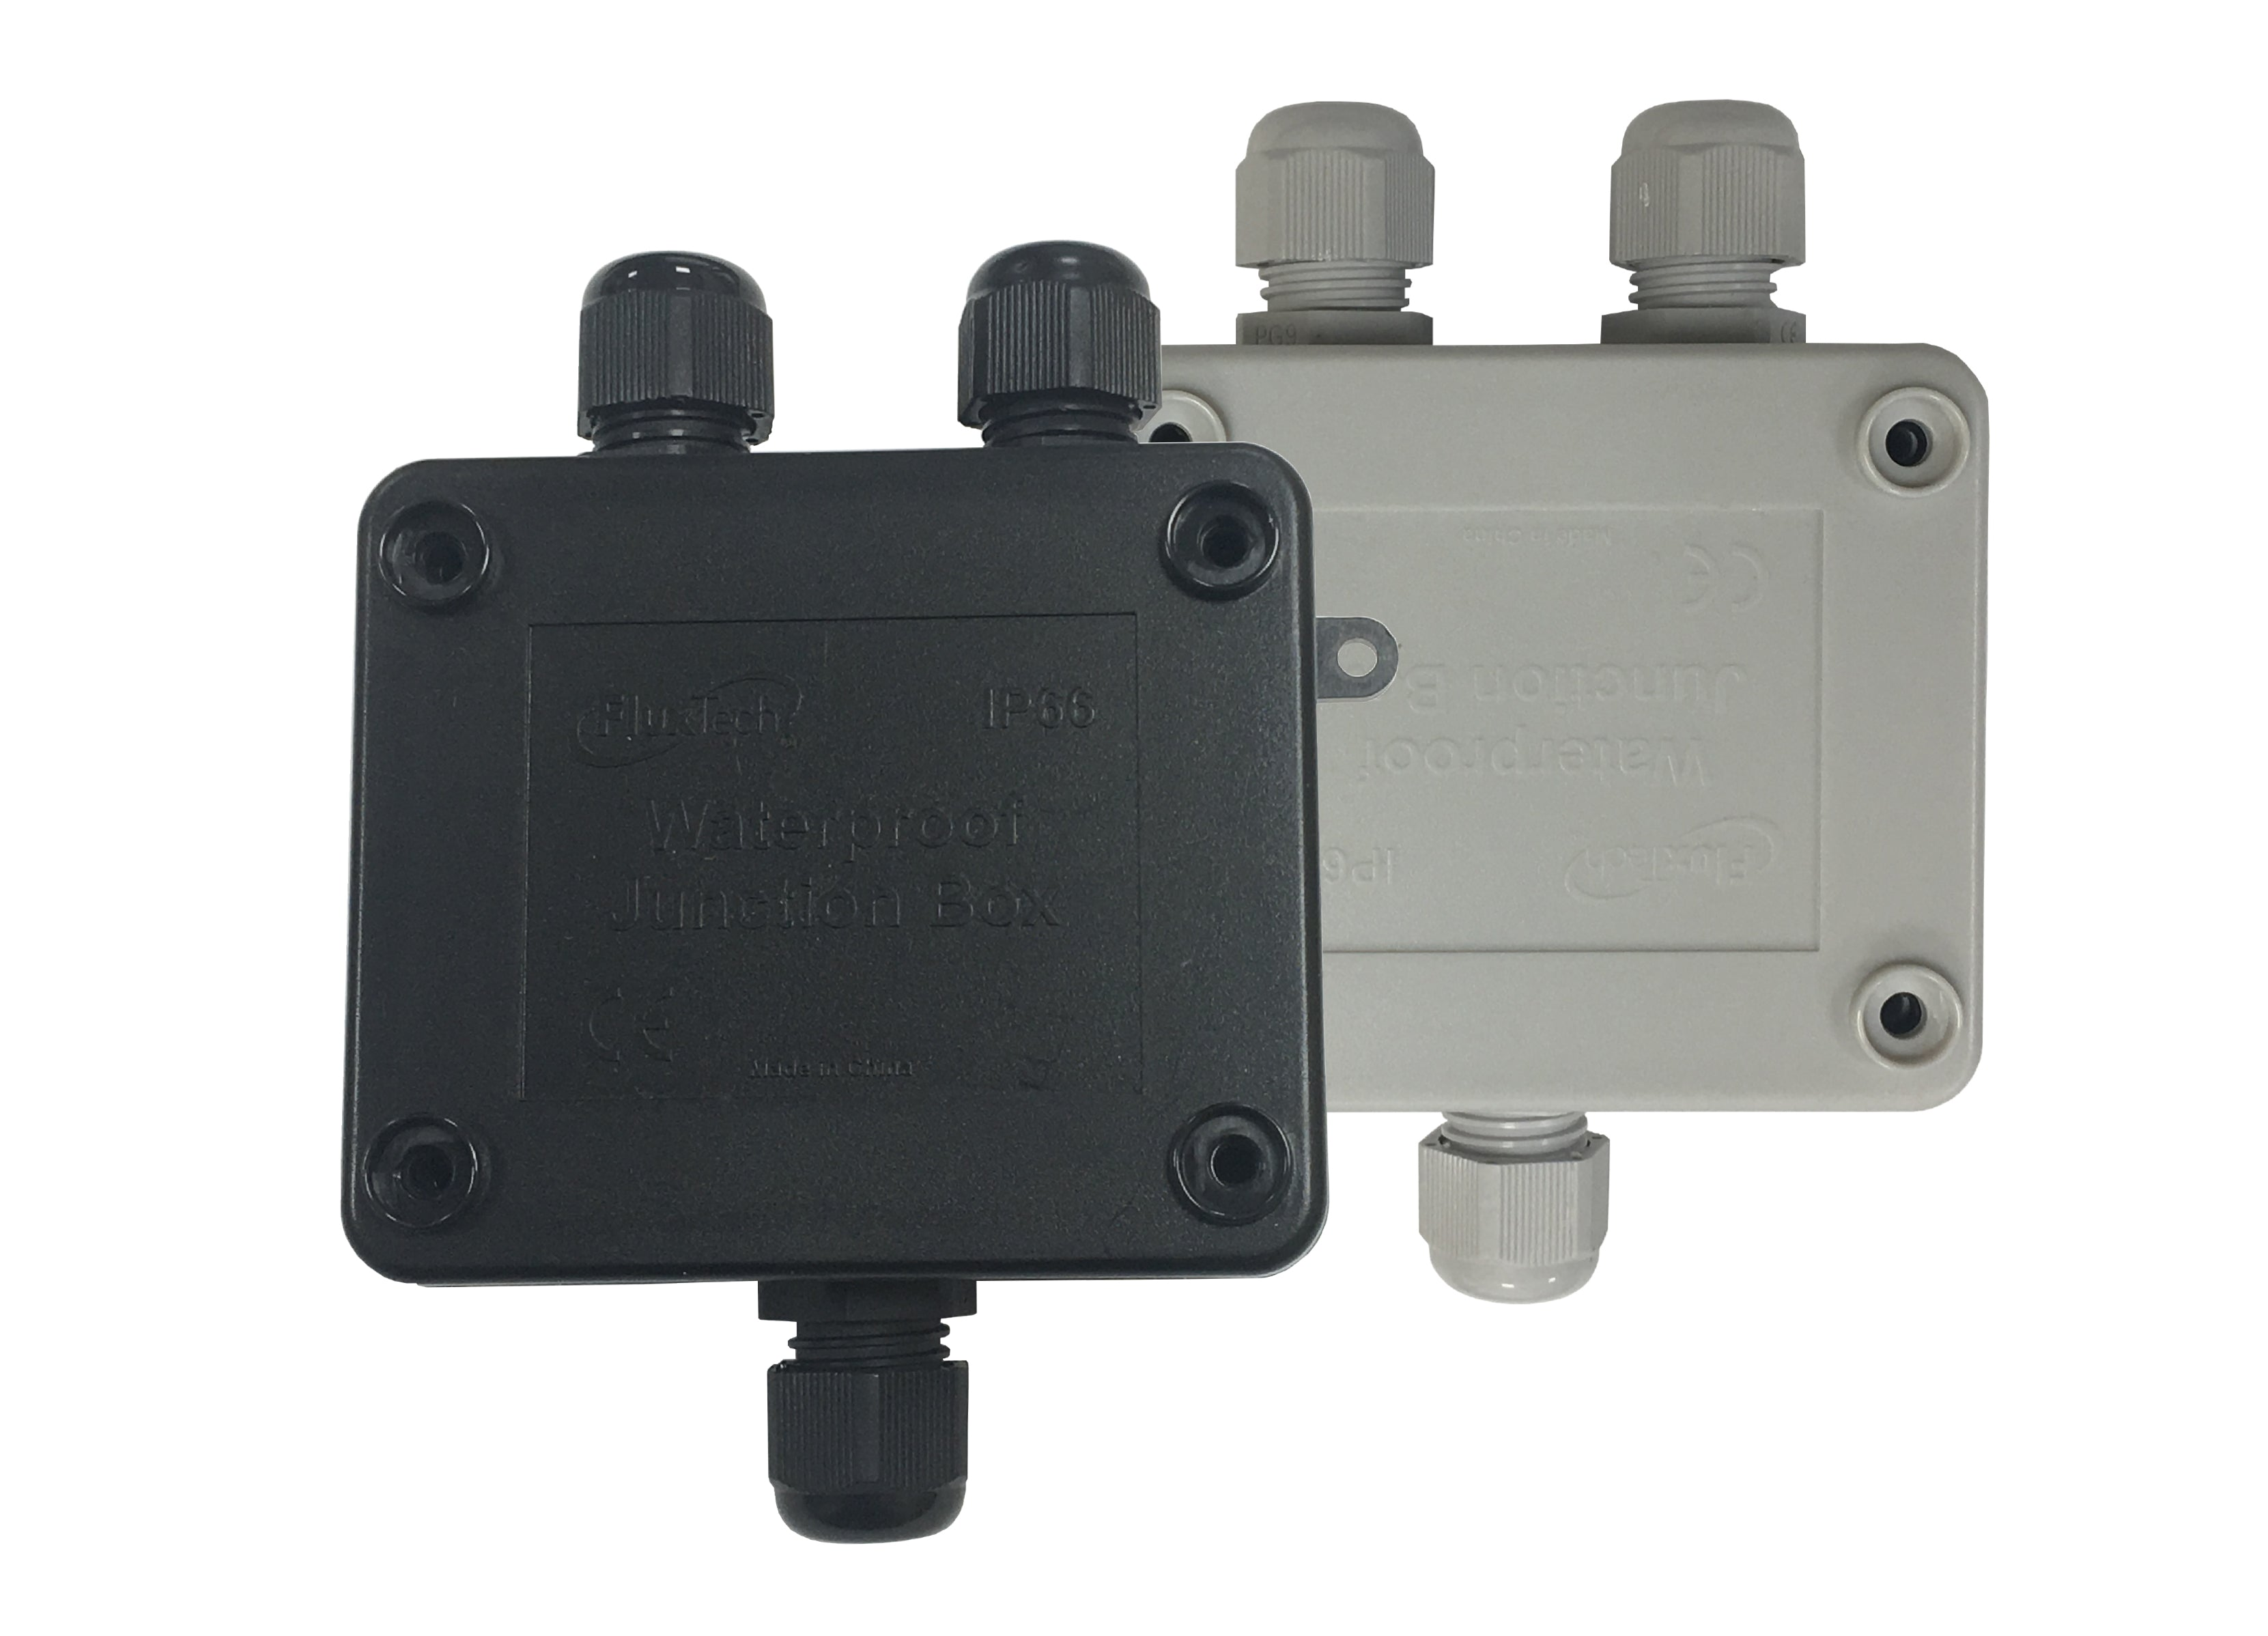 FluxTech - IP66 Outdoor Waterproof 3 Way Cable Connectors Junction Box